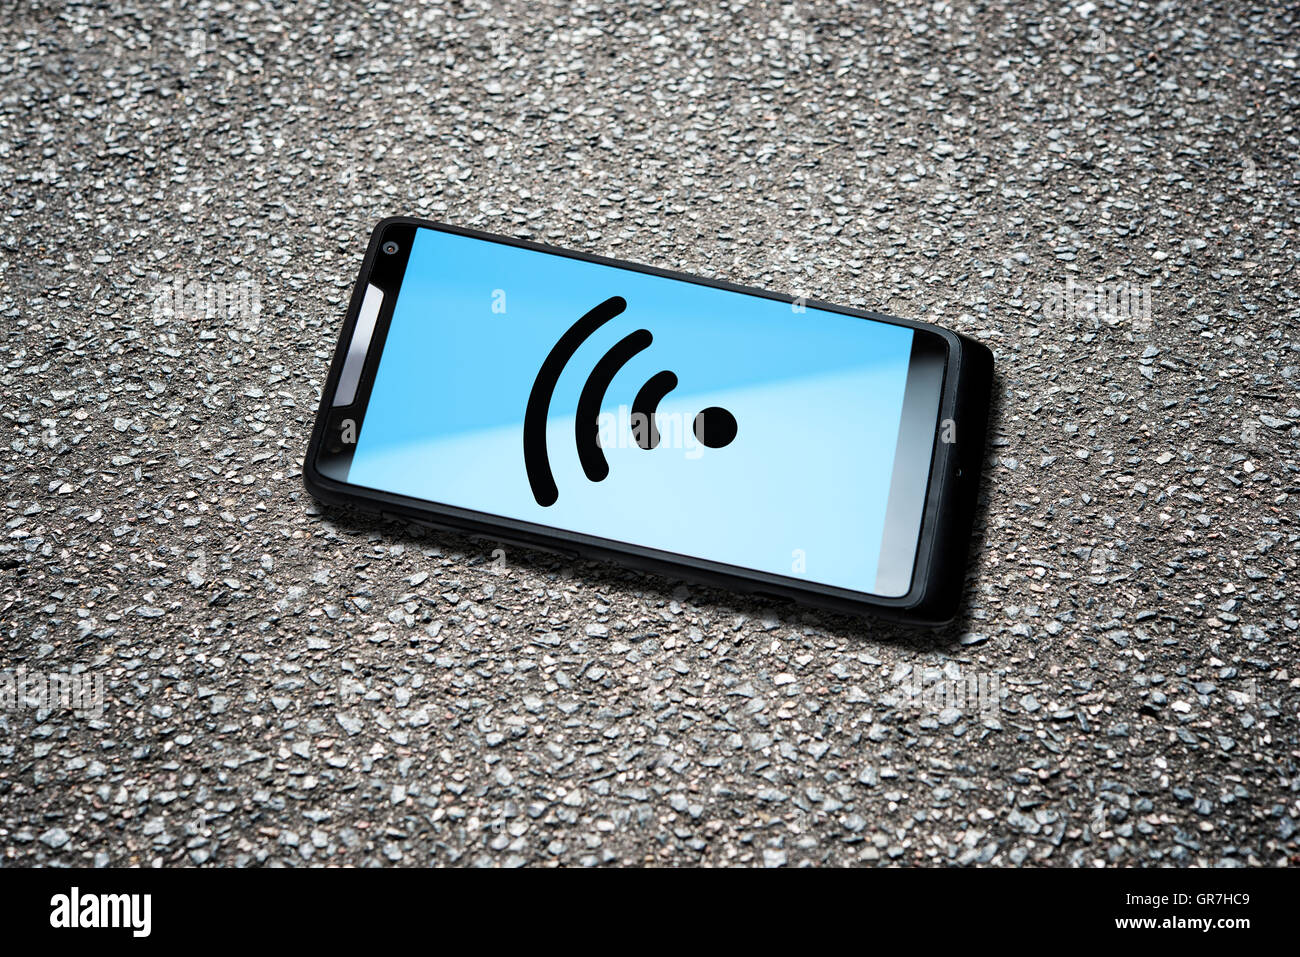 Wireless Lan Hot Spot - Stock Image